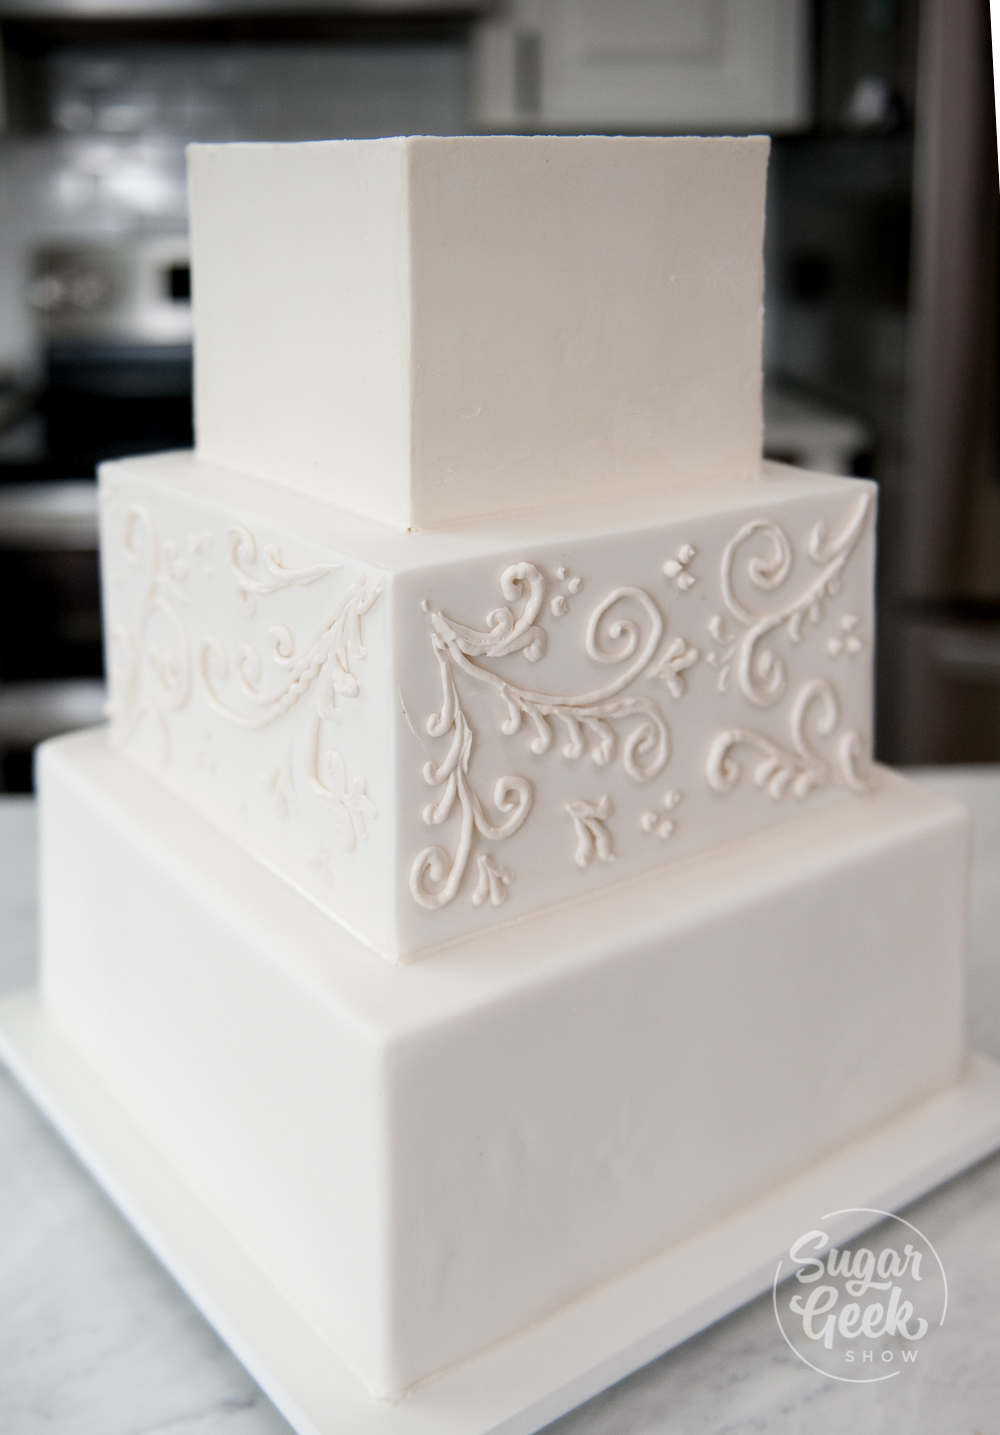 Three tier square buttercream wedding cake with white scrollwork on the center tier